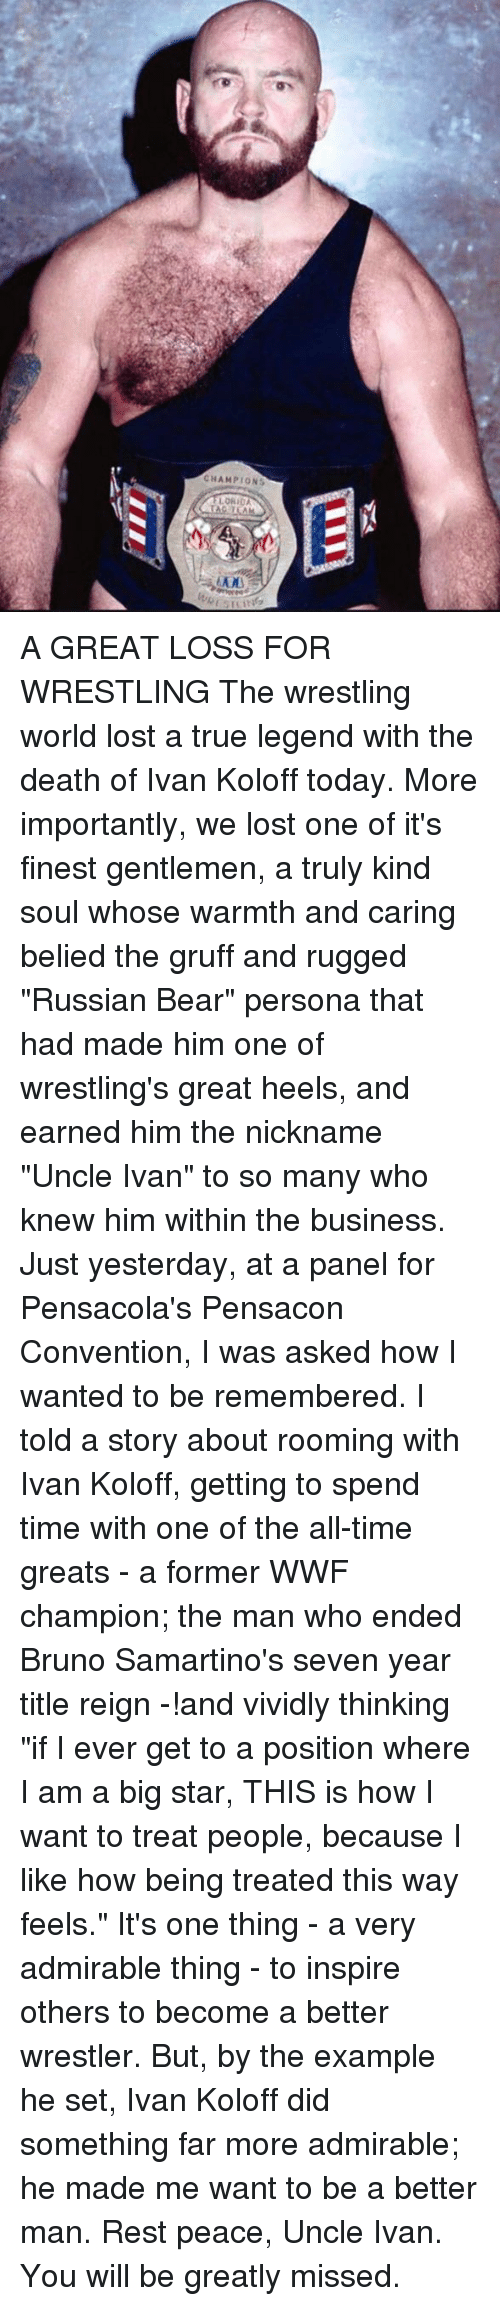 """big star: CHAMPIONS  LORIDA A GREAT LOSS FOR WRESTLING   The wrestling world lost a true legend with the death of Ivan Koloff today. More importantly, we lost one of it's finest gentlemen, a truly kind soul whose warmth and caring belied the gruff and rugged """"Russian Bear"""" persona that had made him one of wrestling's great heels, and earned him the nickname """"Uncle Ivan"""" to so many who knew him within the business.  Just yesterday, at a panel for Pensacola's Pensacon Convention, I was asked how I wanted to be remembered. I told a story about rooming with Ivan Koloff, getting to spend time with one of the all-time greats - a former WWF champion; the man who ended Bruno Samartino's seven year title reign -!and vividly thinking """"if I ever get to a position where I am a big star, THIS is how I want to treat people, because I like how being treated this way feels."""" It's one thing - a very admirable thing - to inspire others to become a better wrestler. But, by the example he set, Ivan Koloff did something far more admirable; he made me want to be a better man. Rest peace, Uncle Ivan. You will be greatly missed."""